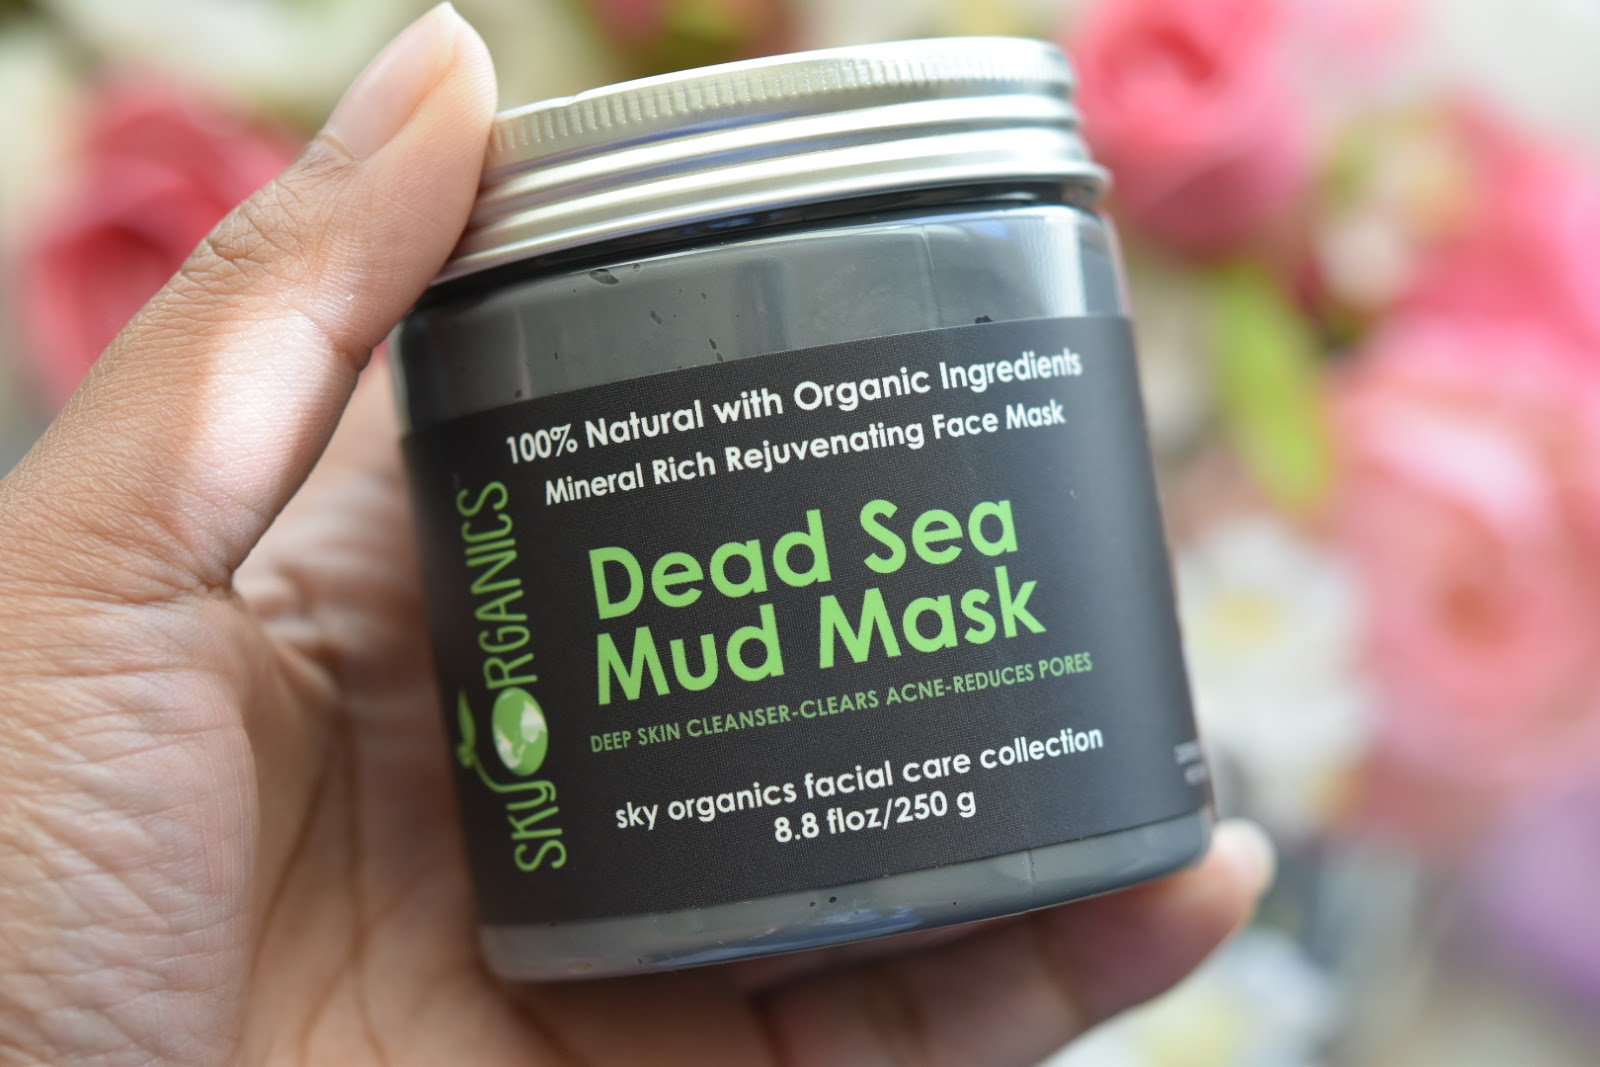 Sky Organics Dead Sea Mud Mask Sourced from Israel  via  www.productreviewmom.com